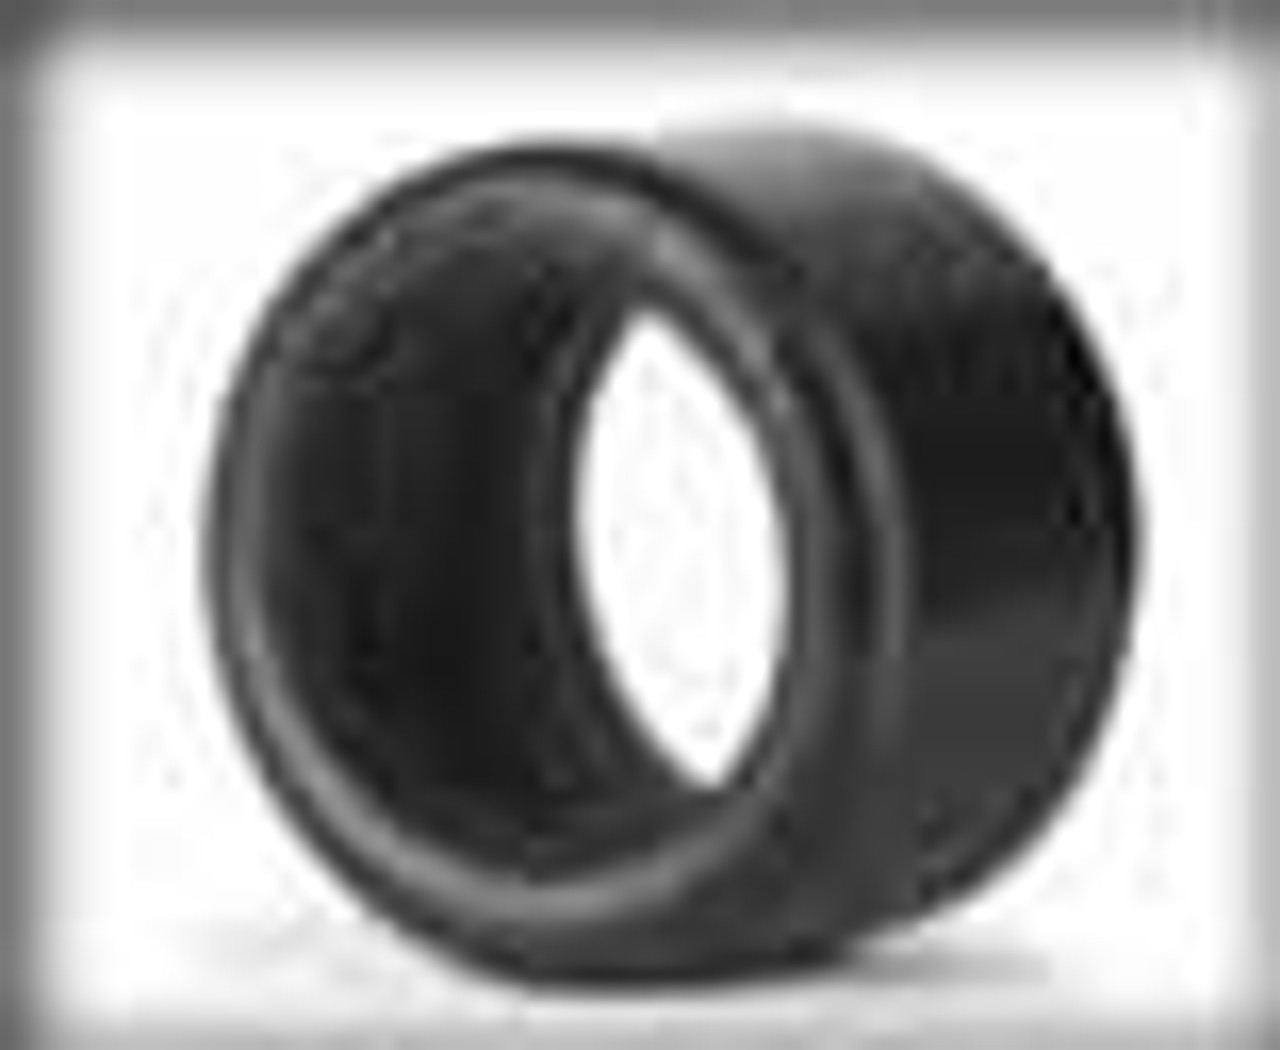 Jel Claws Racing Compound Rear Tires - ST-1052